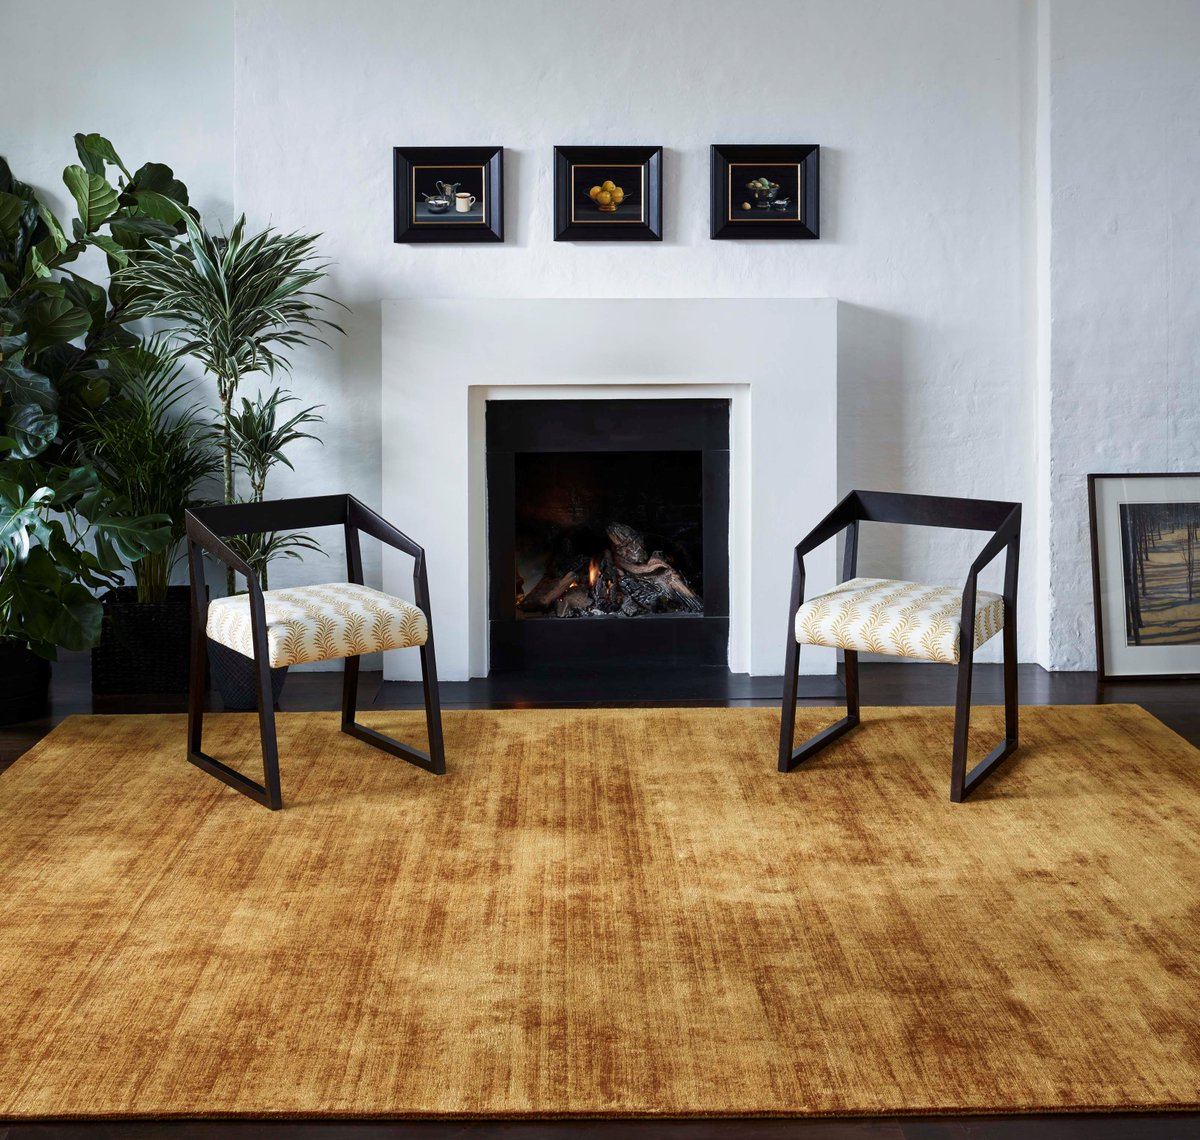 Jacaranda Carpets Satara Gold - available from Flooring 4 You Ltd in Knutsford, Cheshire